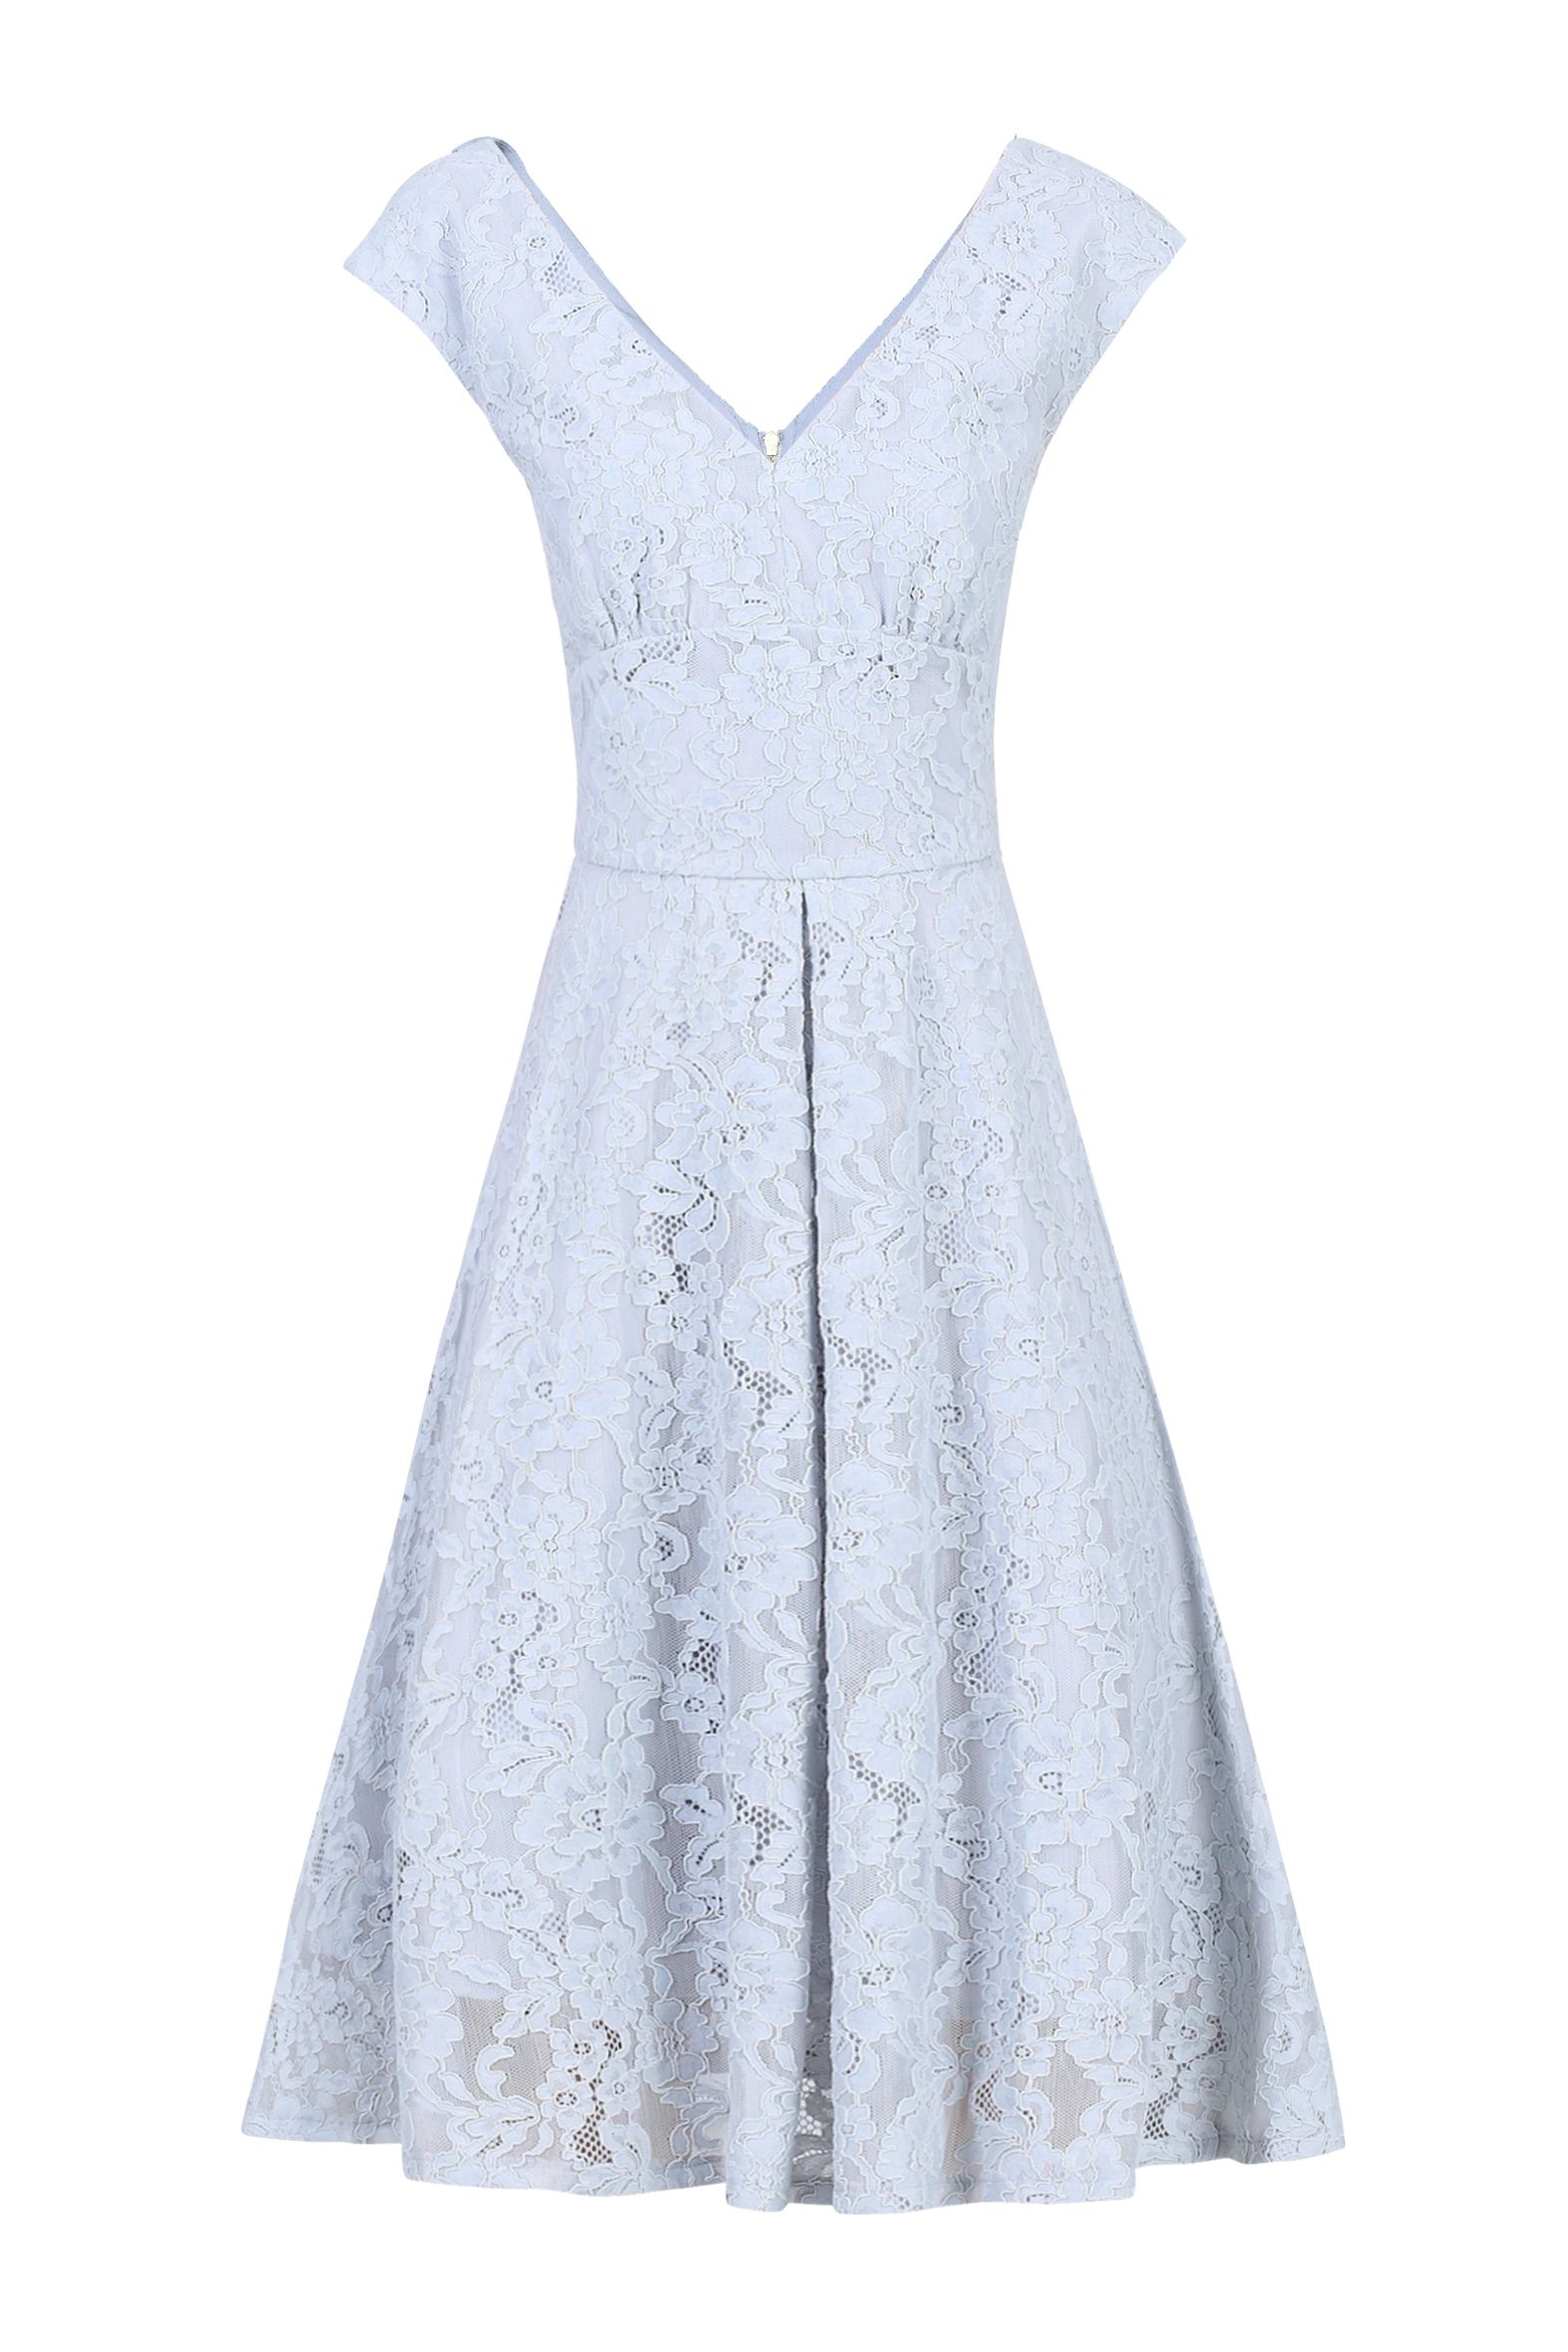 Jolie Moi Sweetheart Neckline 50s Lace Dress, Grey